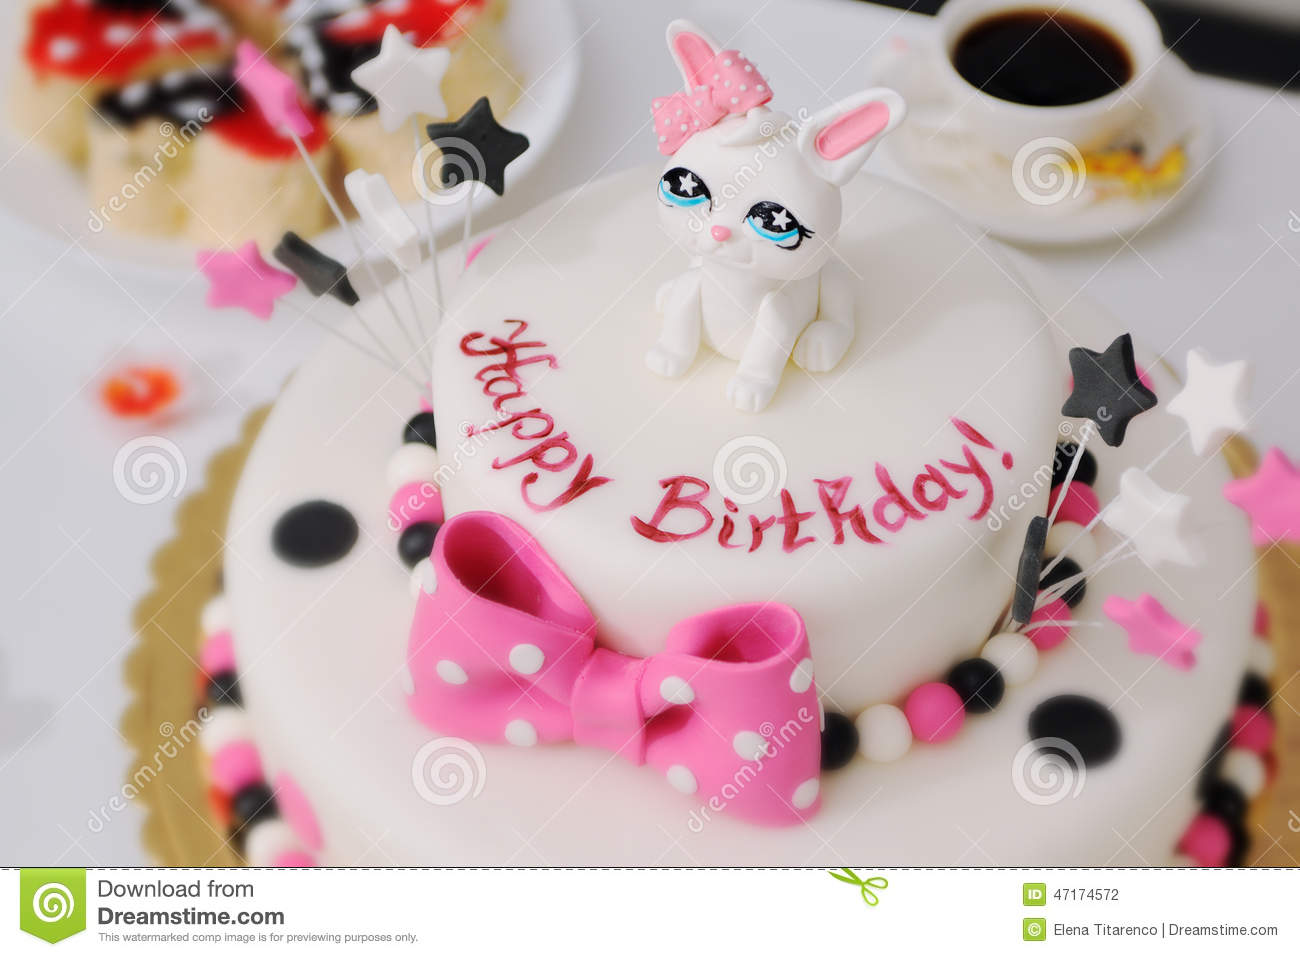 Happy Birthday Cake Stock Photos Download 33057 Images